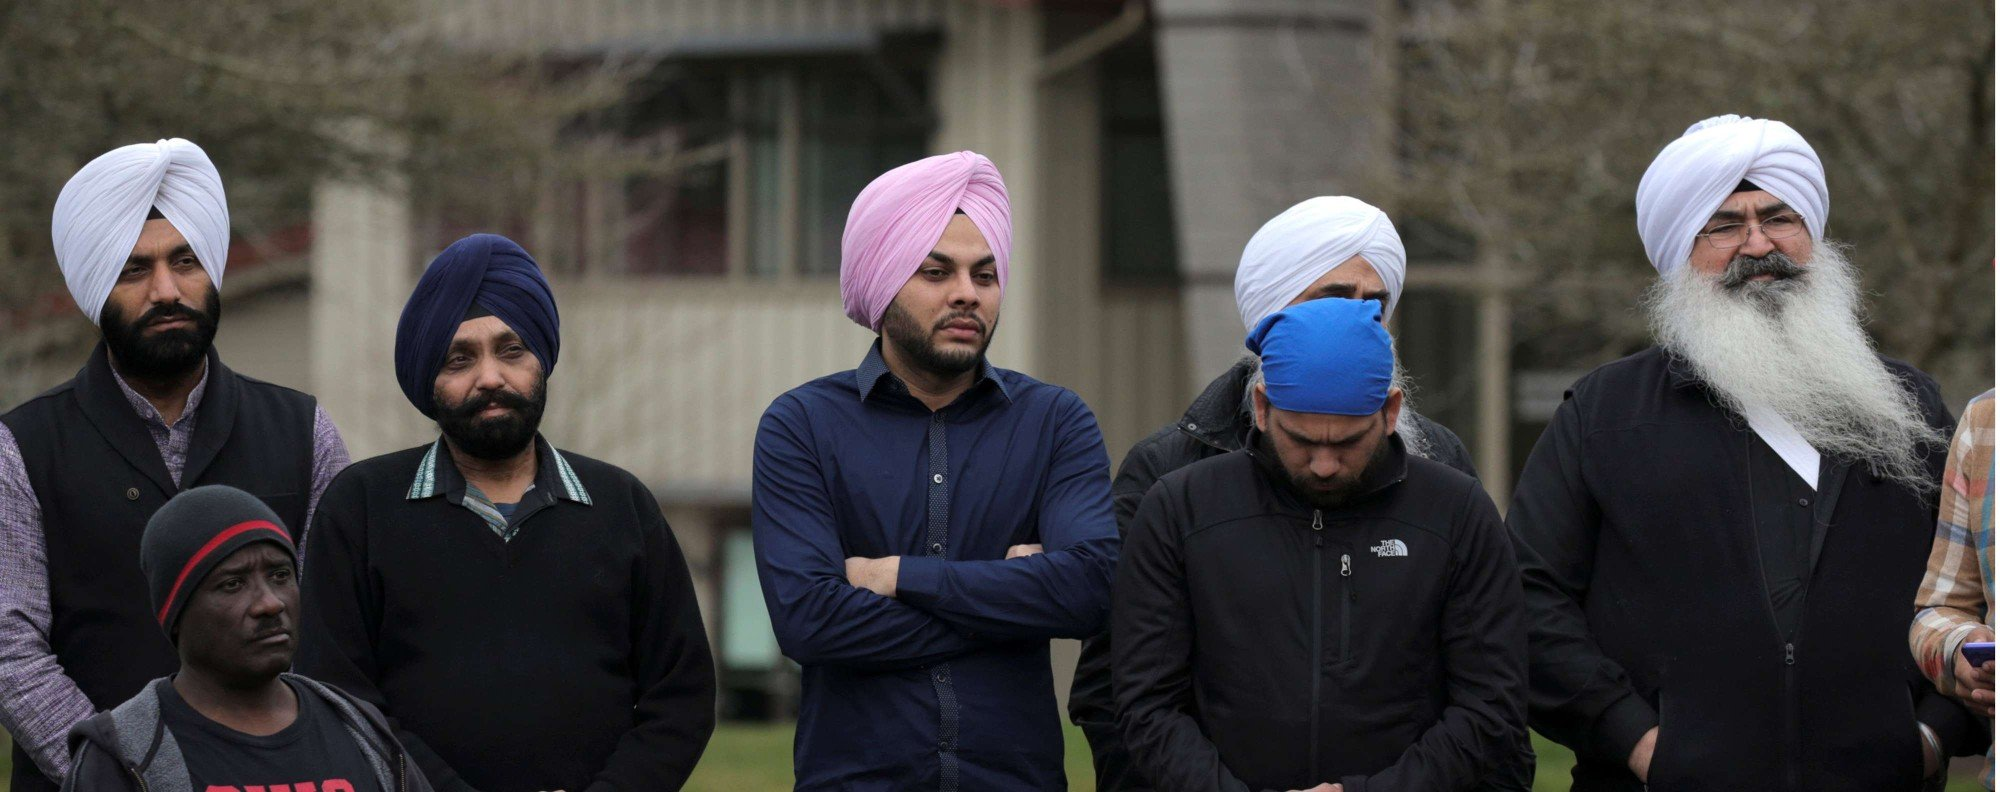 Sikh men at a vigil in Bellevue, Washington. Photo: Reuters